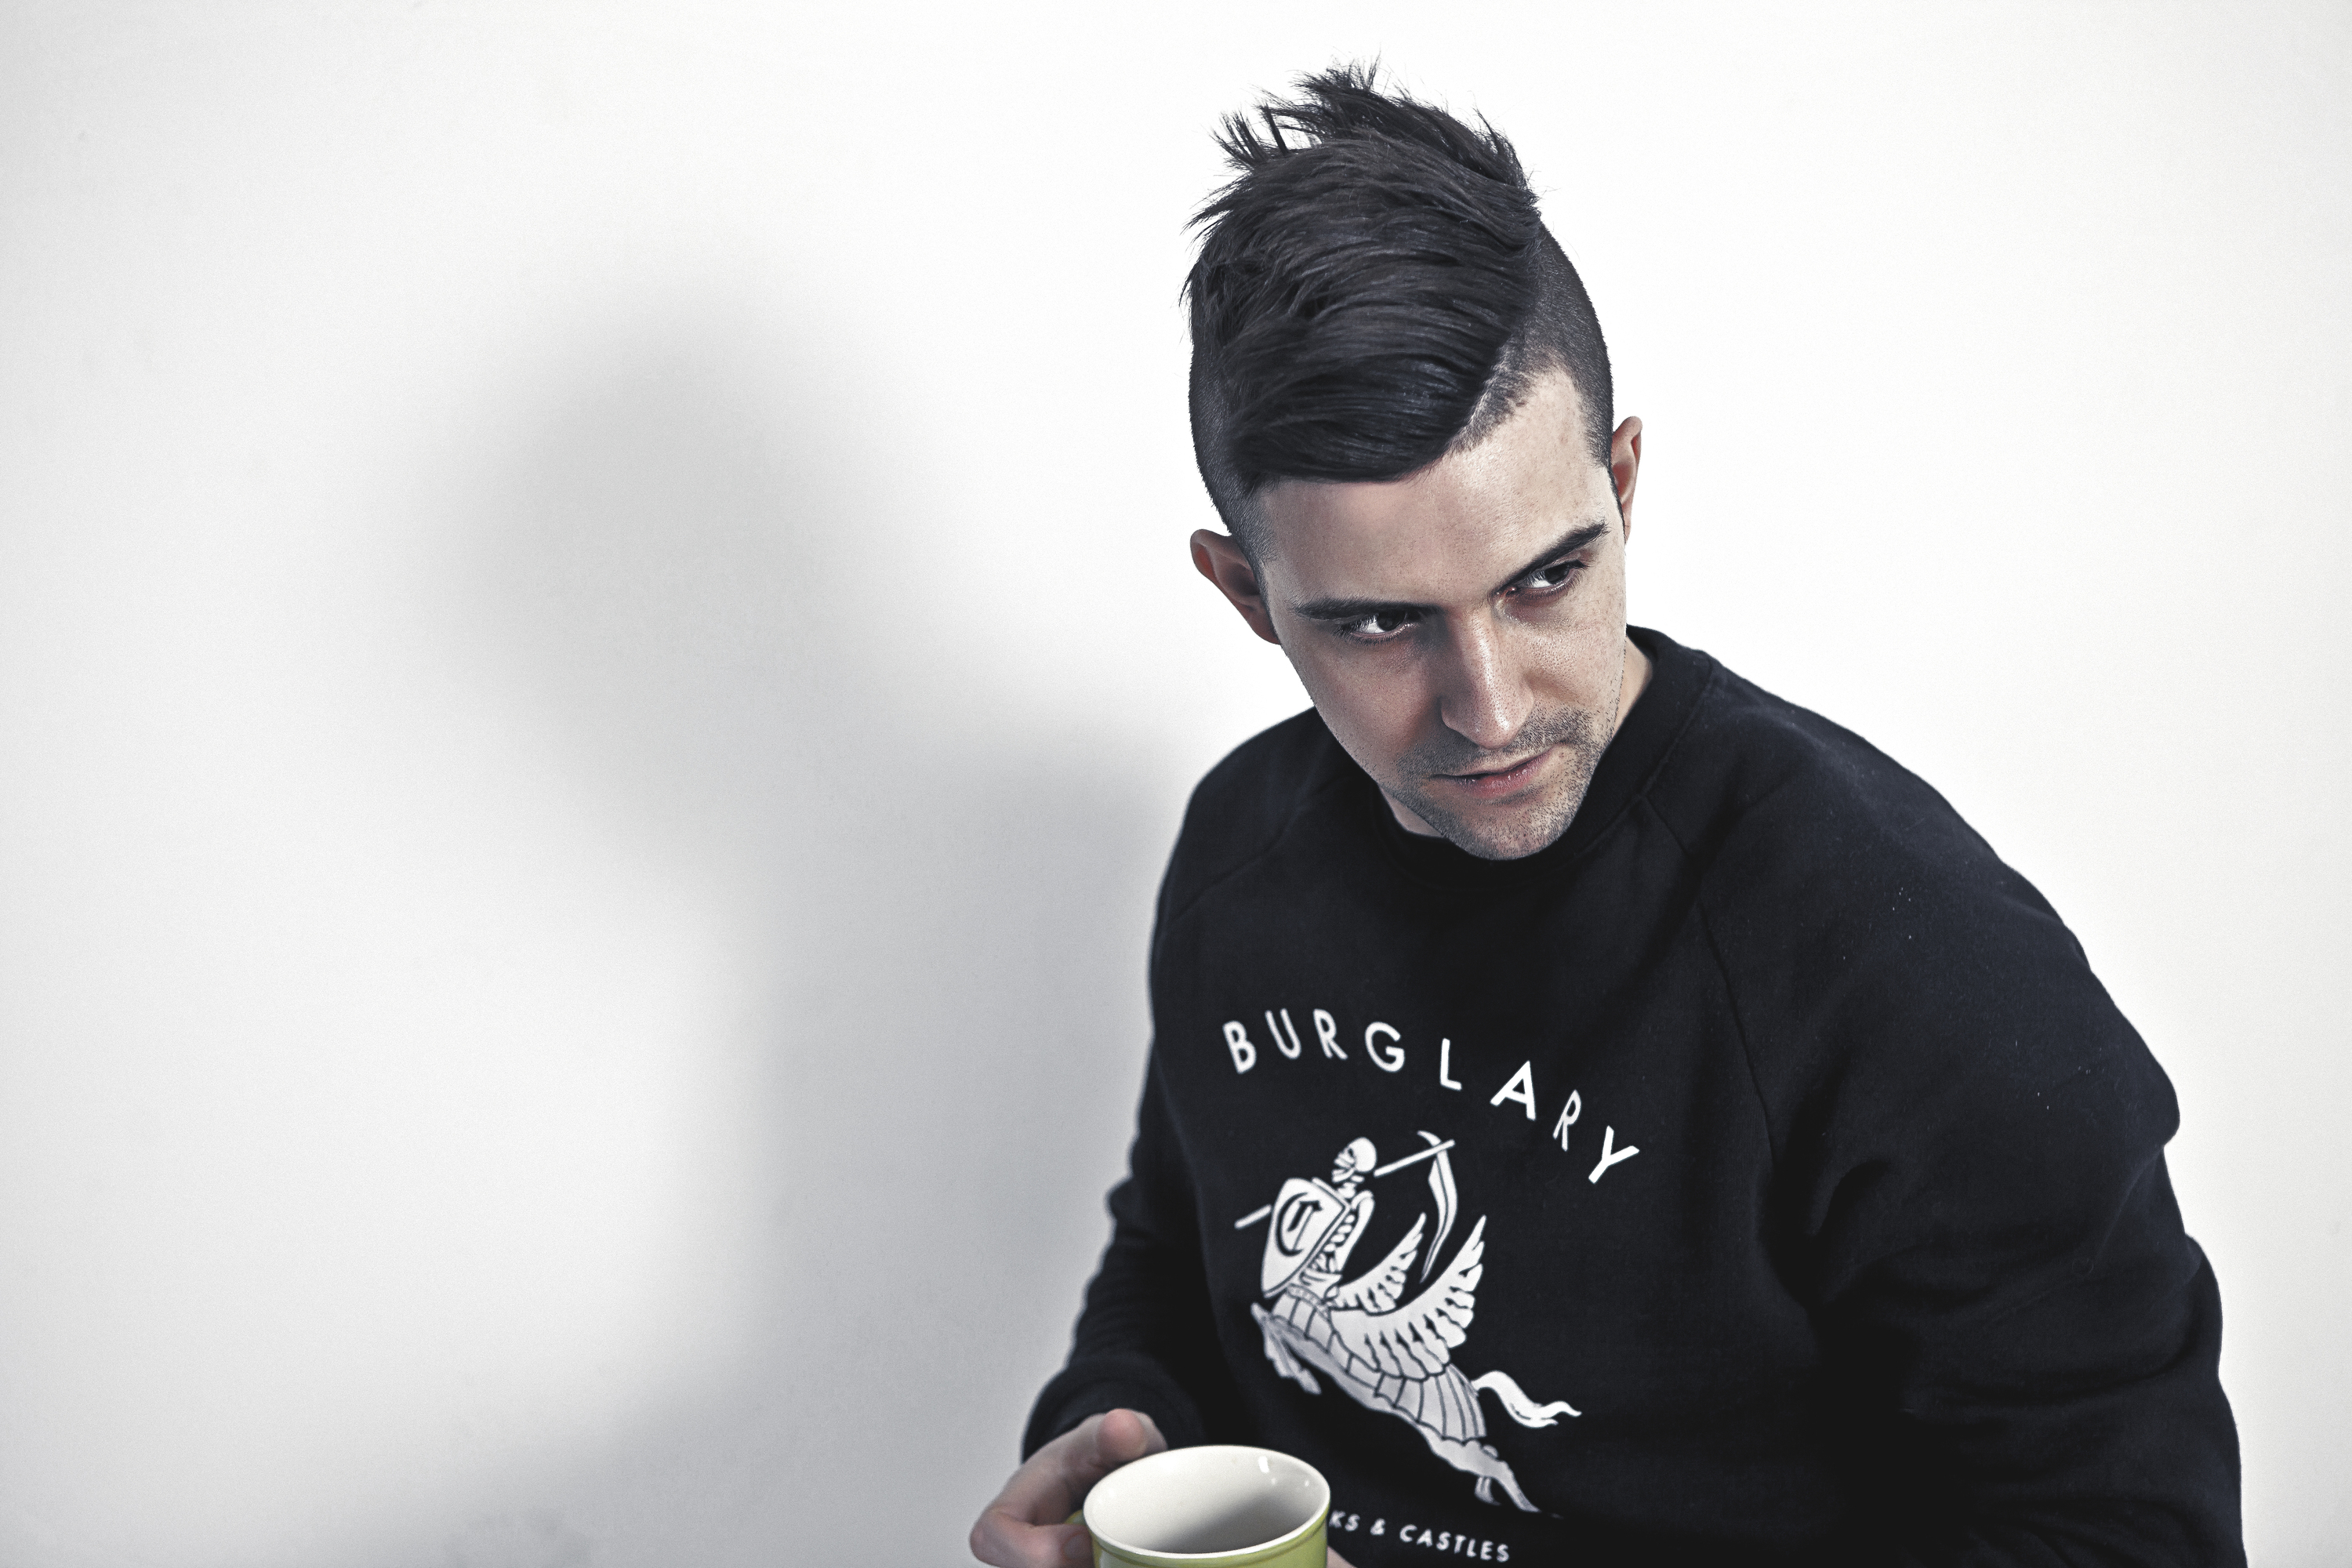 Yann Cavaille, DJ and Producer, Pute Deluxe